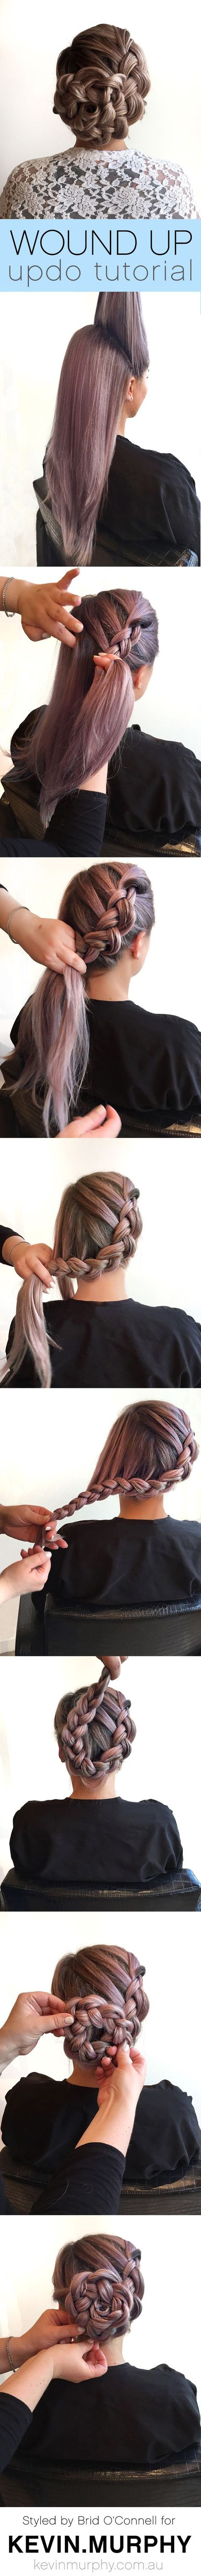 best images about cute hair styles on pinterest coiffures updo